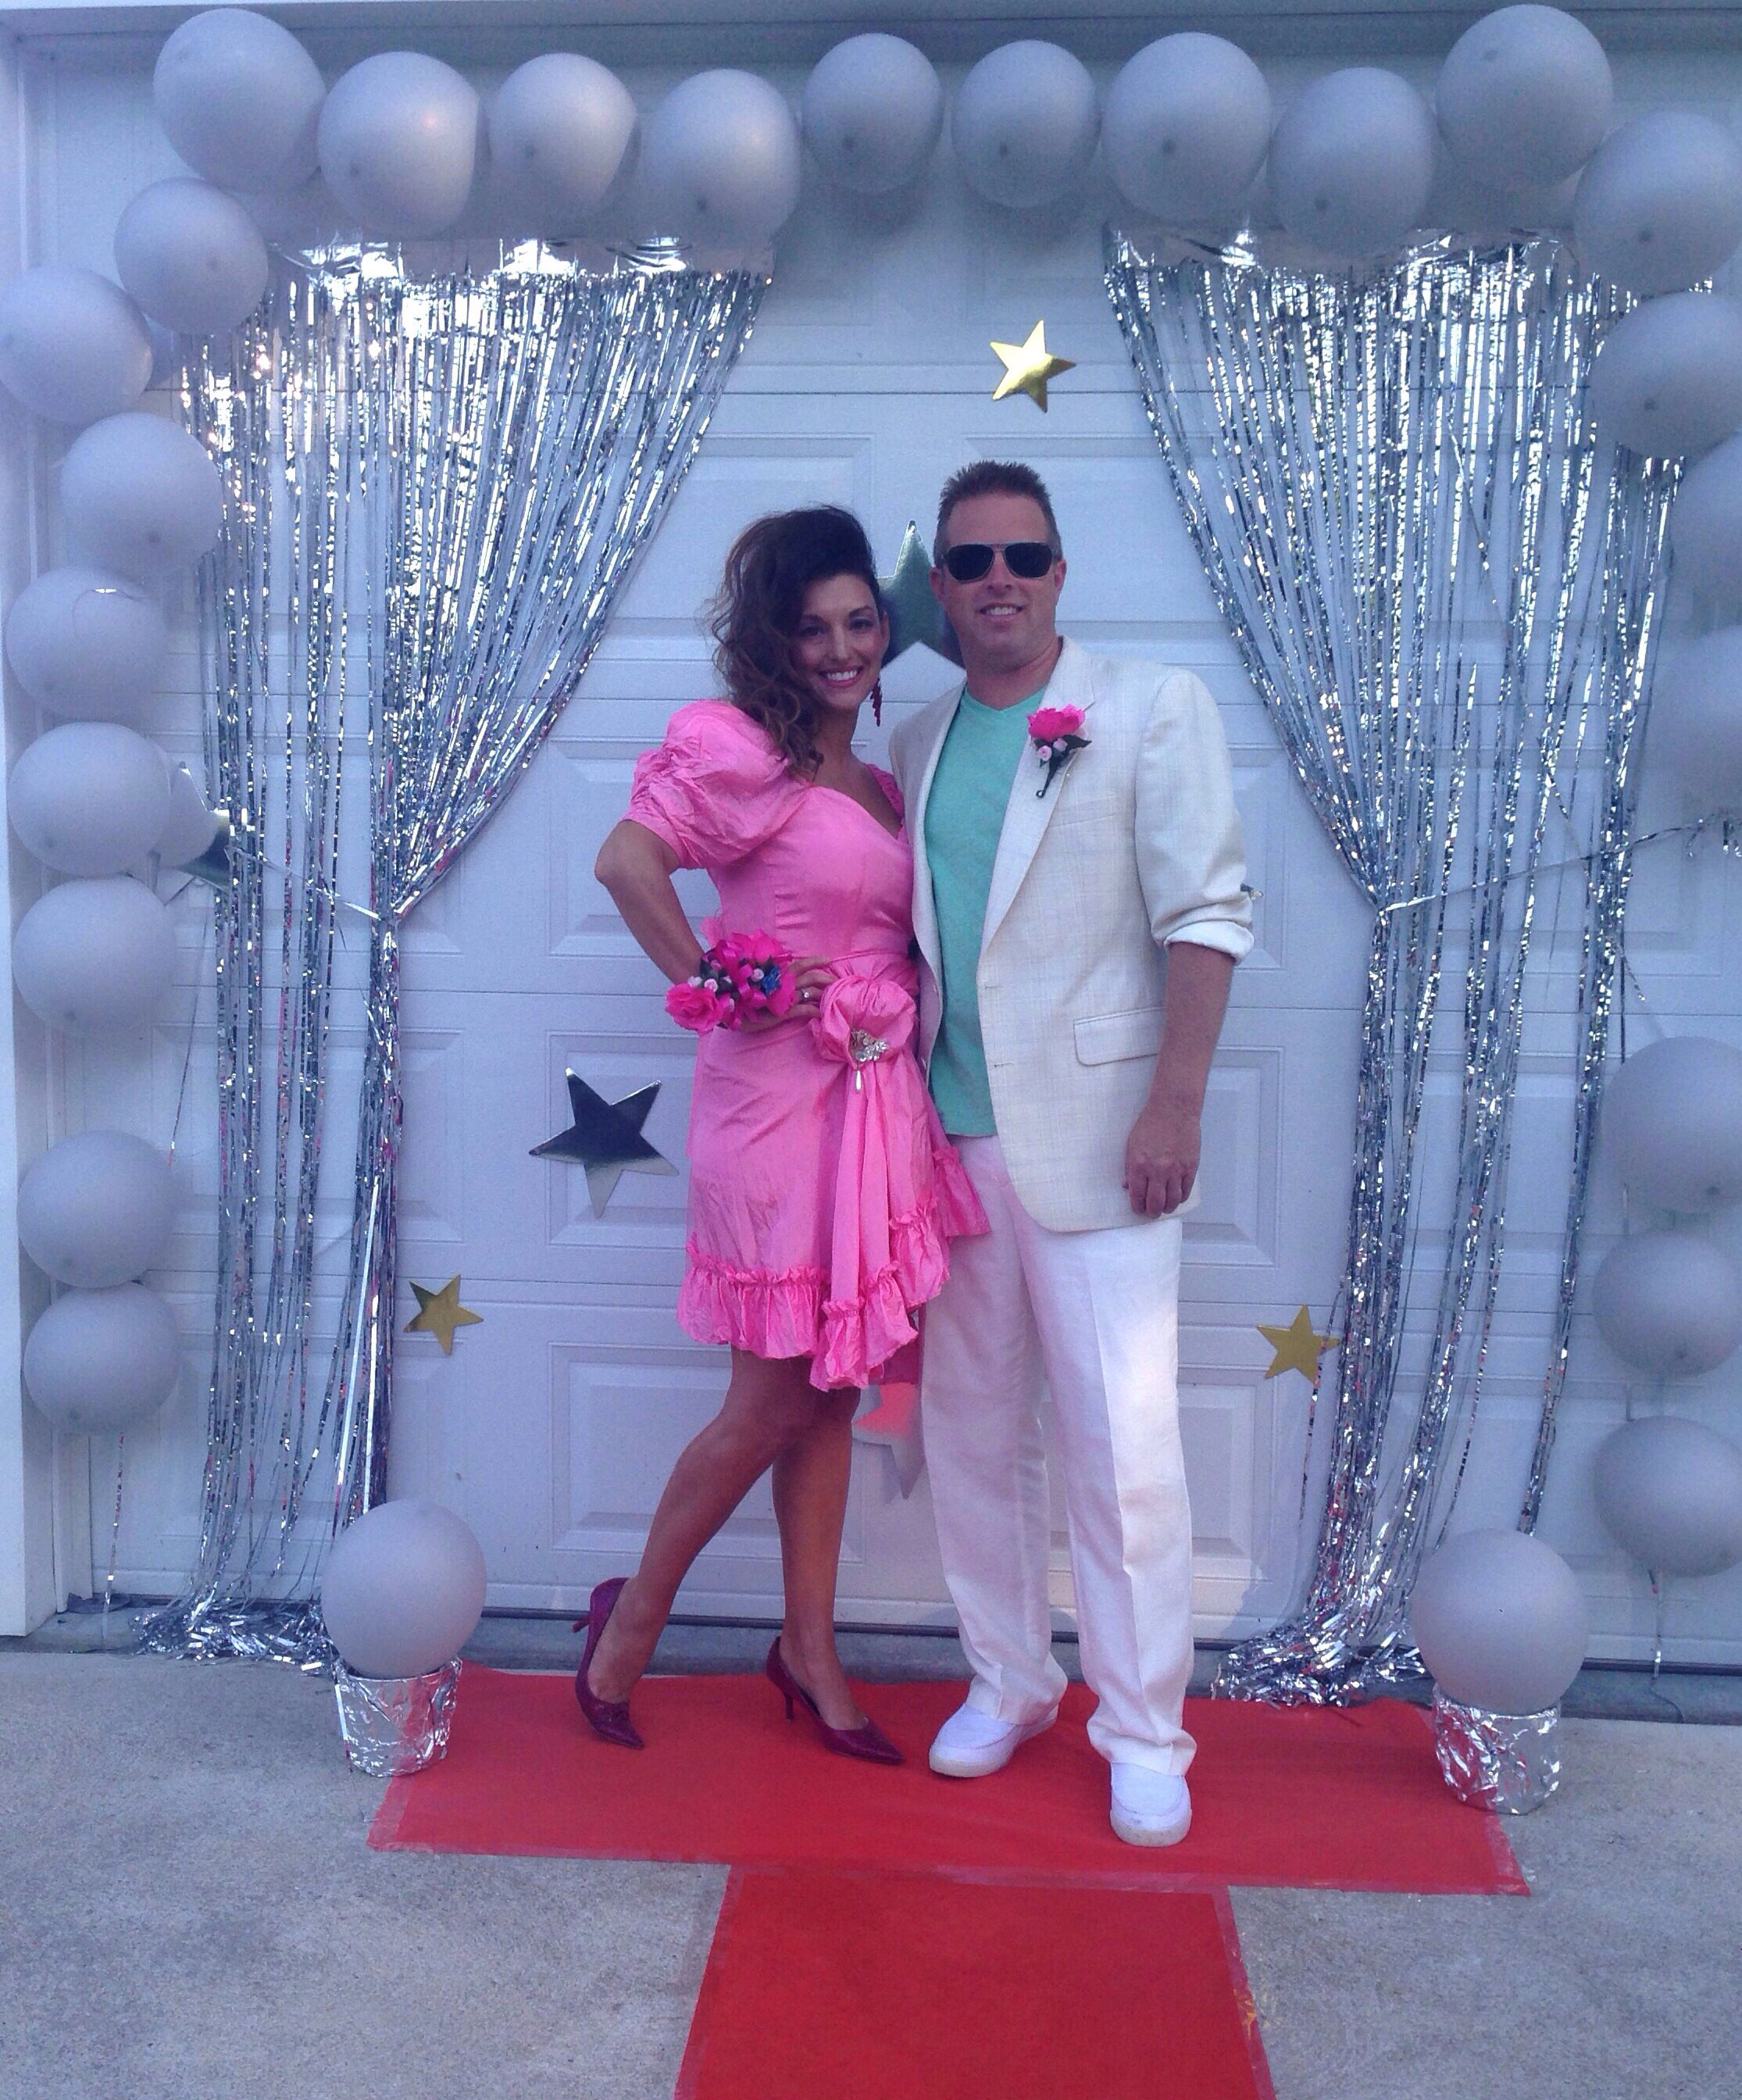 80 39 s prom 80 39 s prom pinterest 80 s prom and 80s party for 80s prom decoration ideas